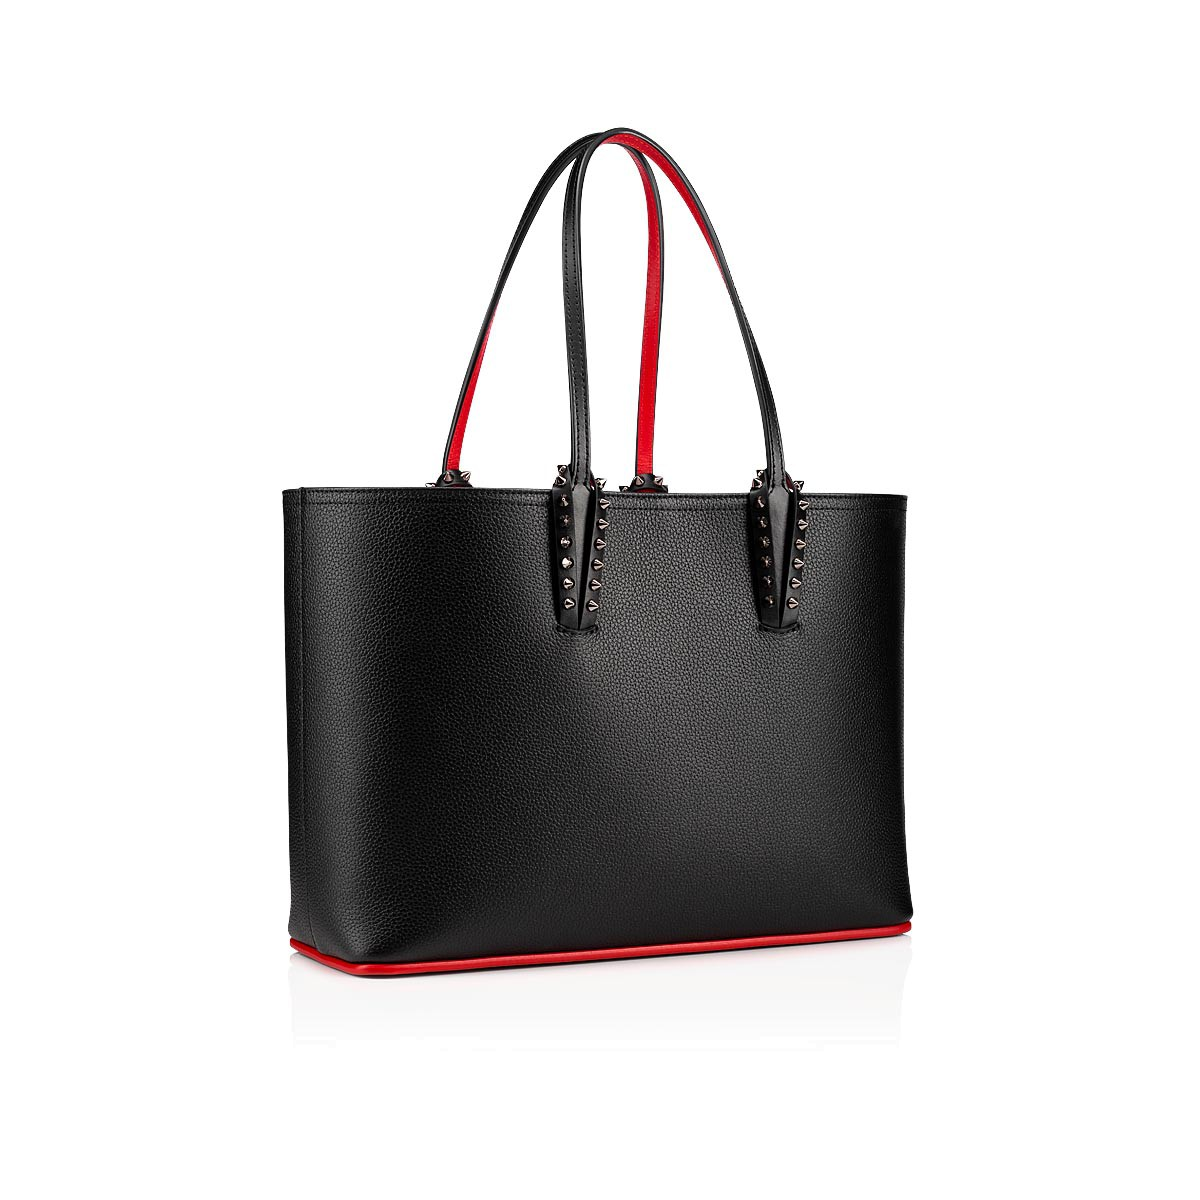 Bags - Cabata Tote Bag Small - Christian Louboutin